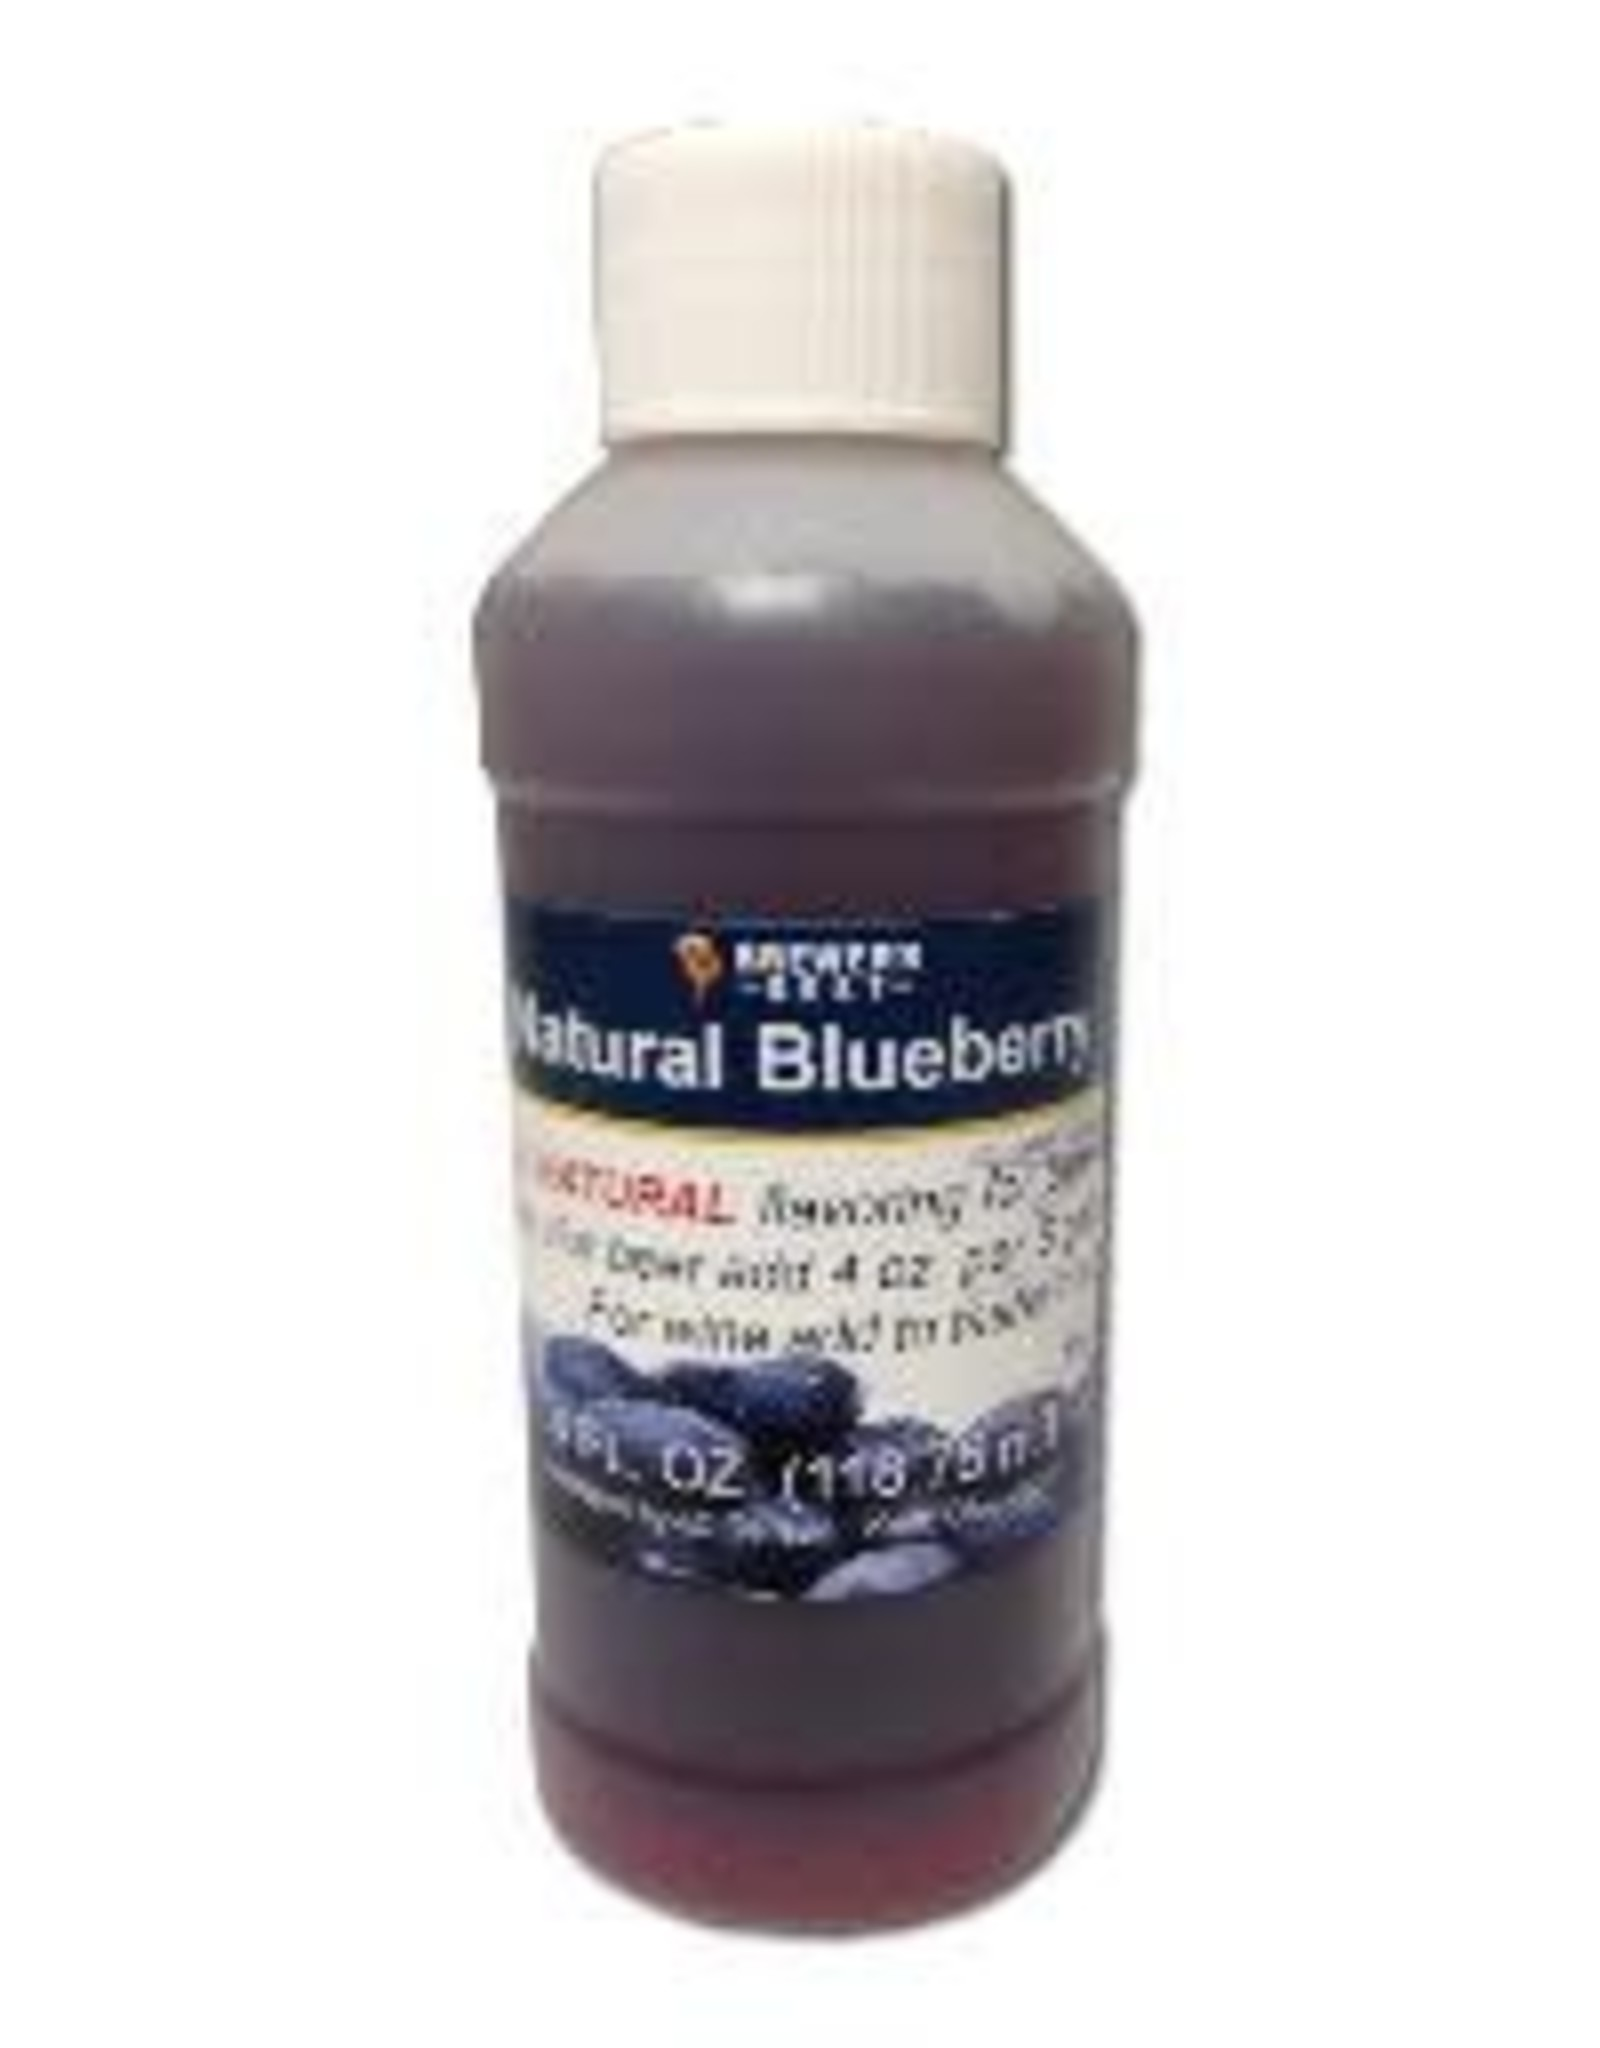 BLUEBERRY FLAVORING 4oz. NATURAL